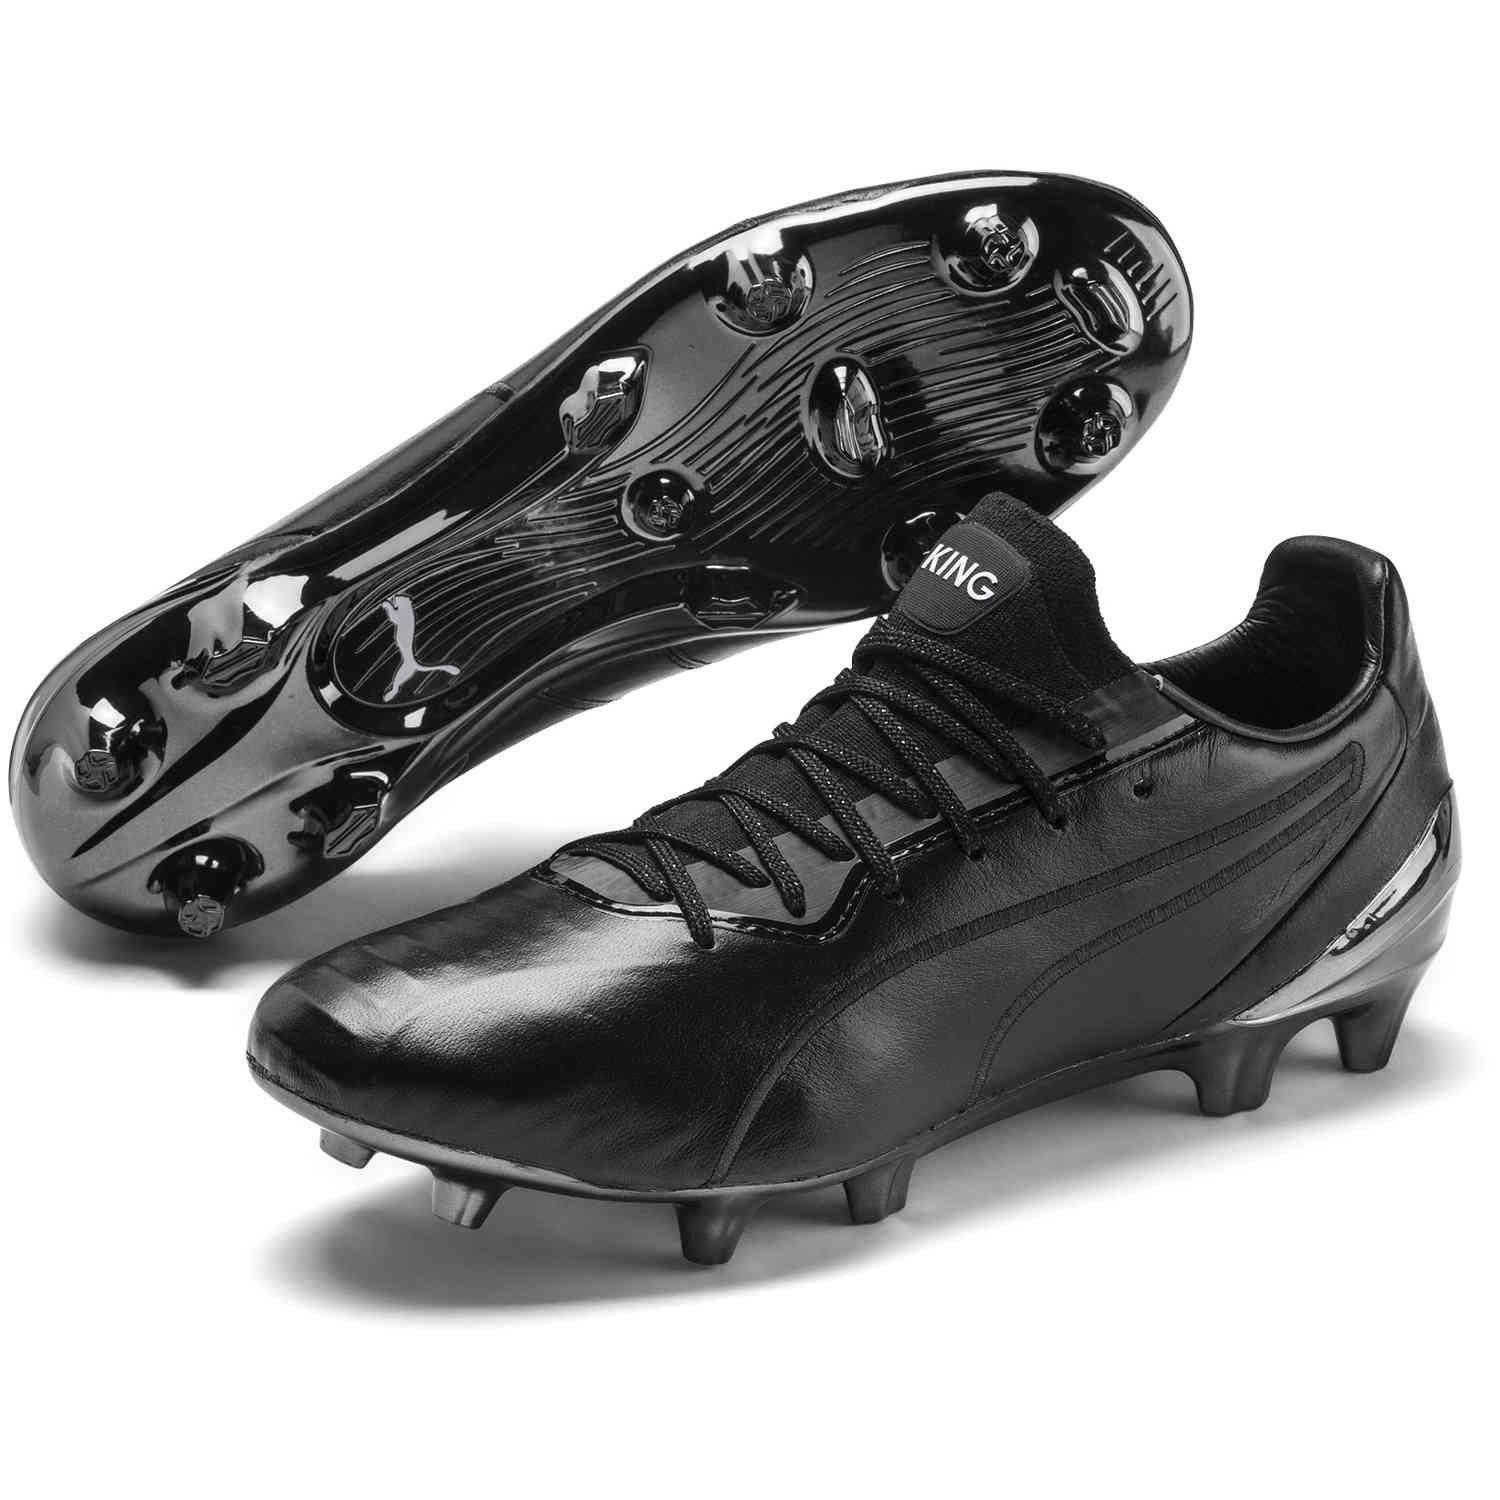 good out x undefeated x outlet store sale Puma King Platinum FG – Black | Football boots, Soccer boots, Mens ...